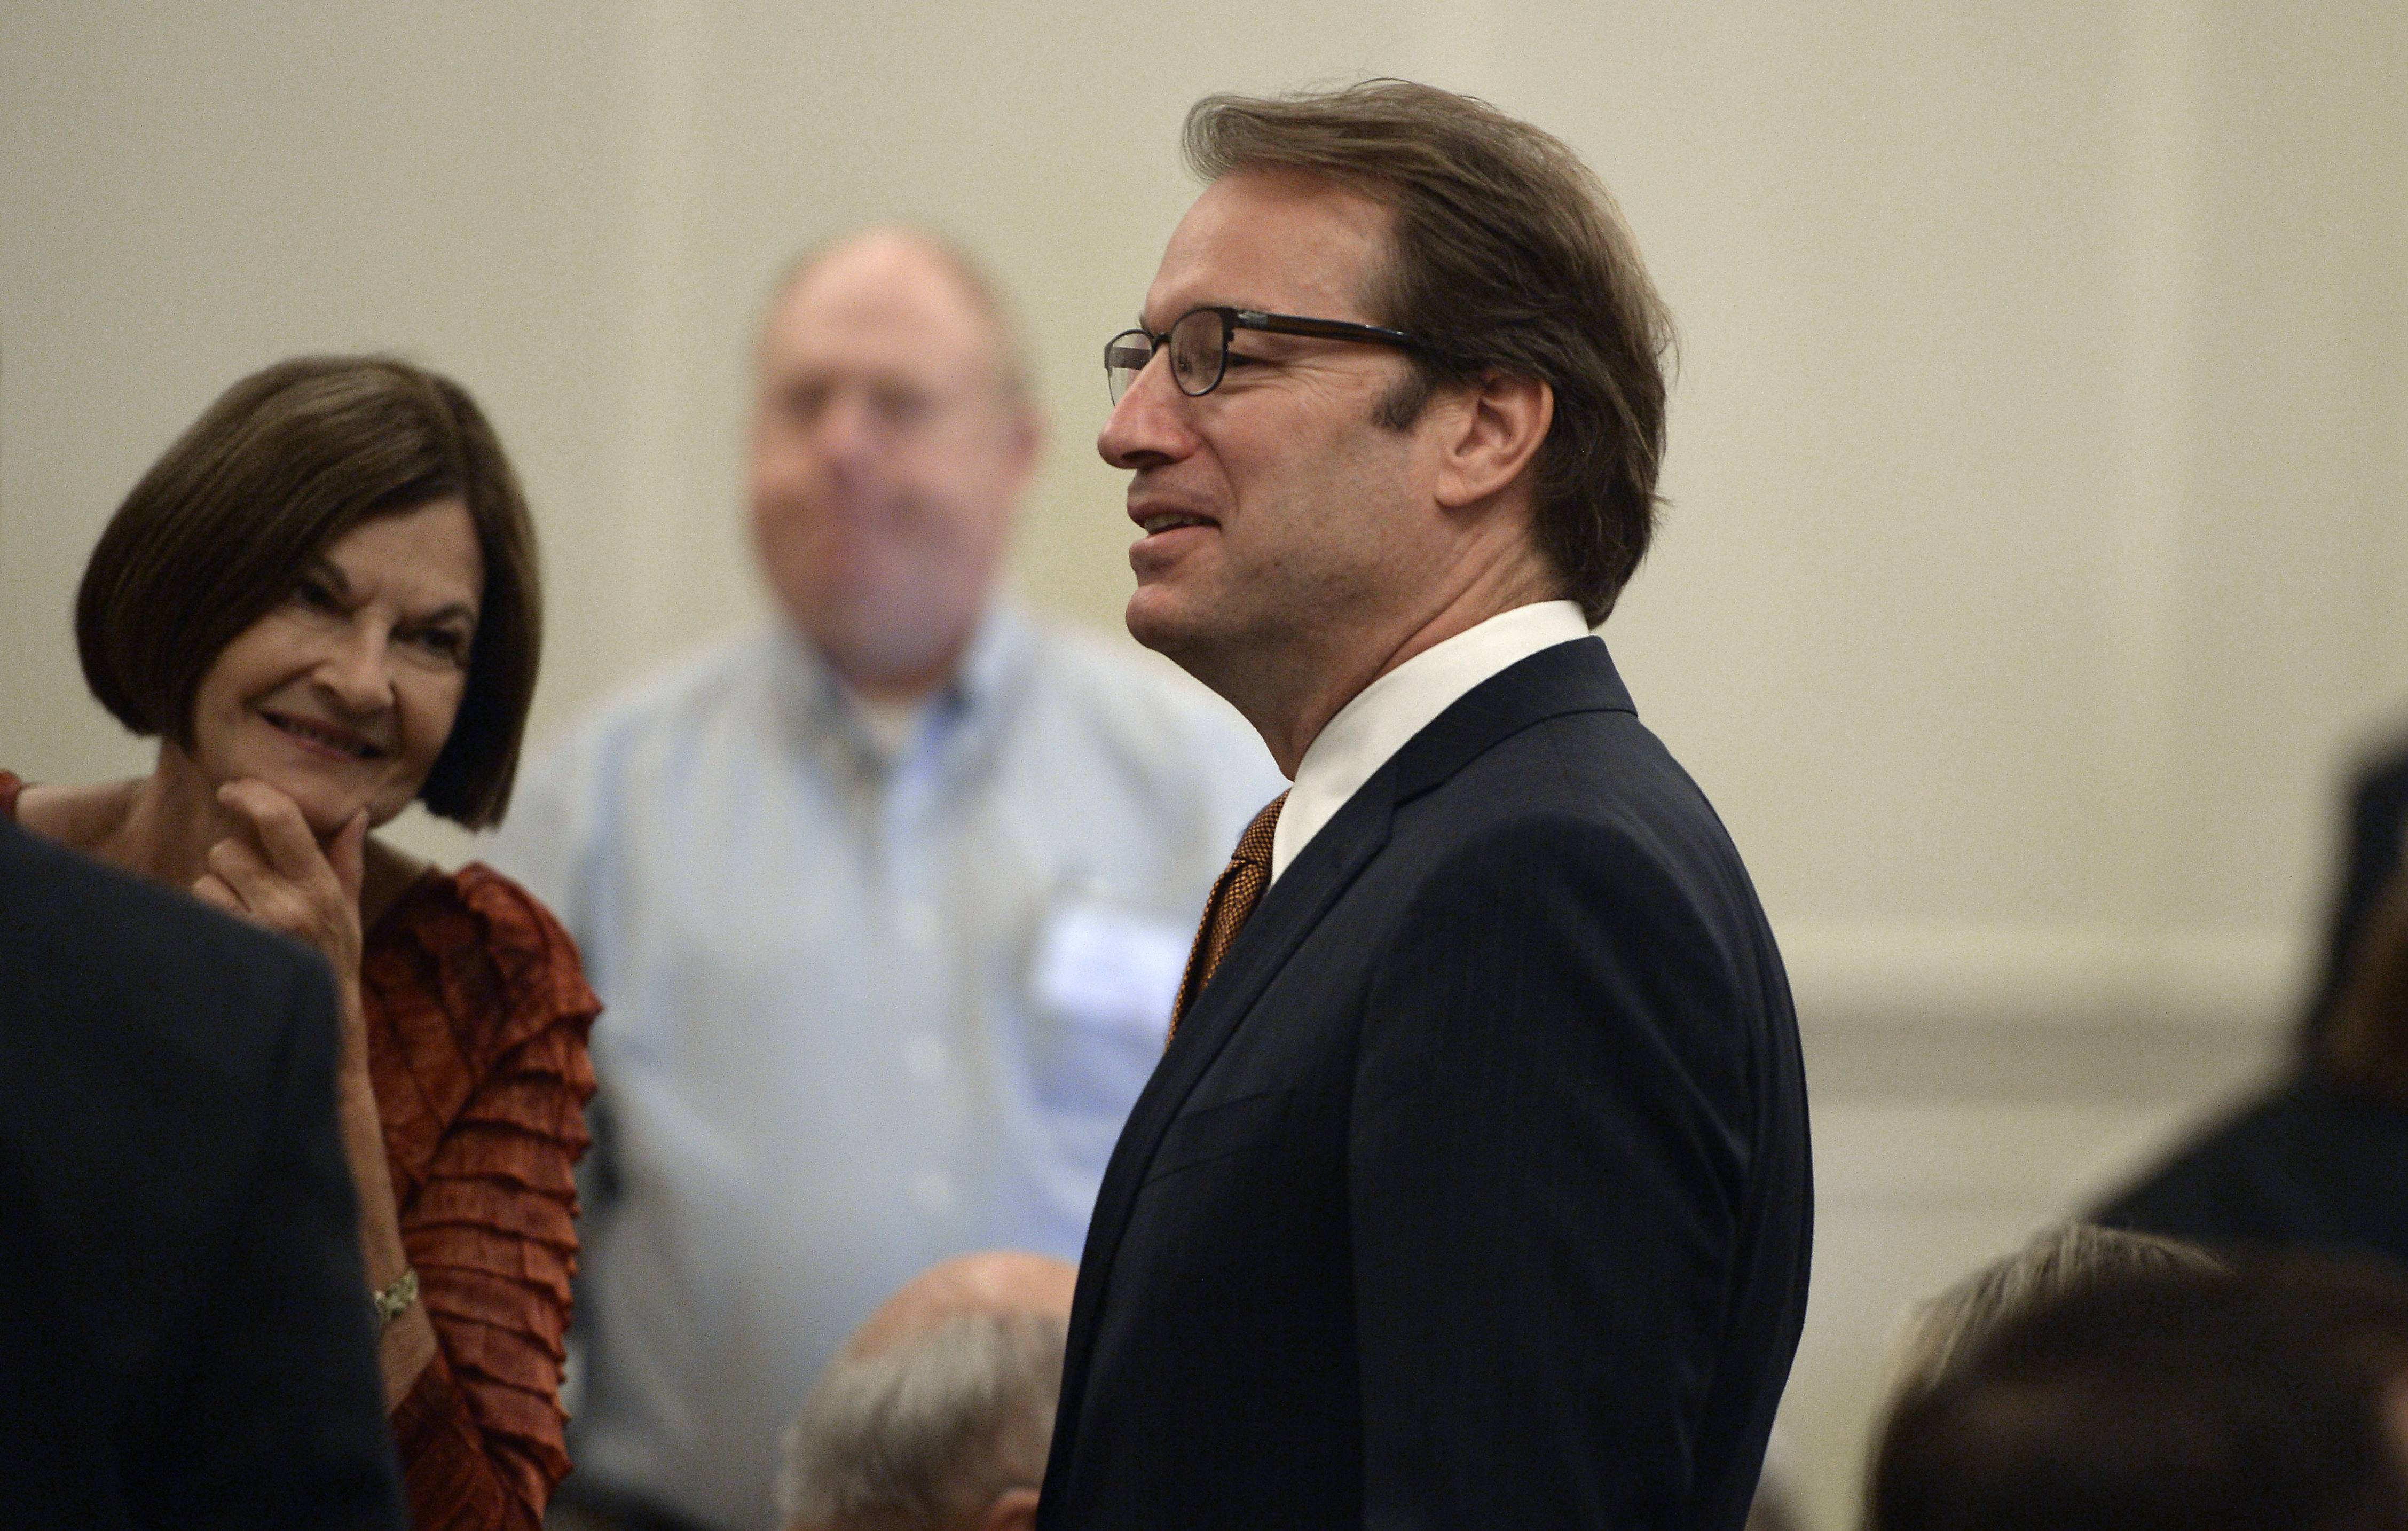 Republican U.S. Rep. Peter Roskam of Wheaton spoke Wednesday at a lunch meeting of suburban chambers of commerce in Palatine.